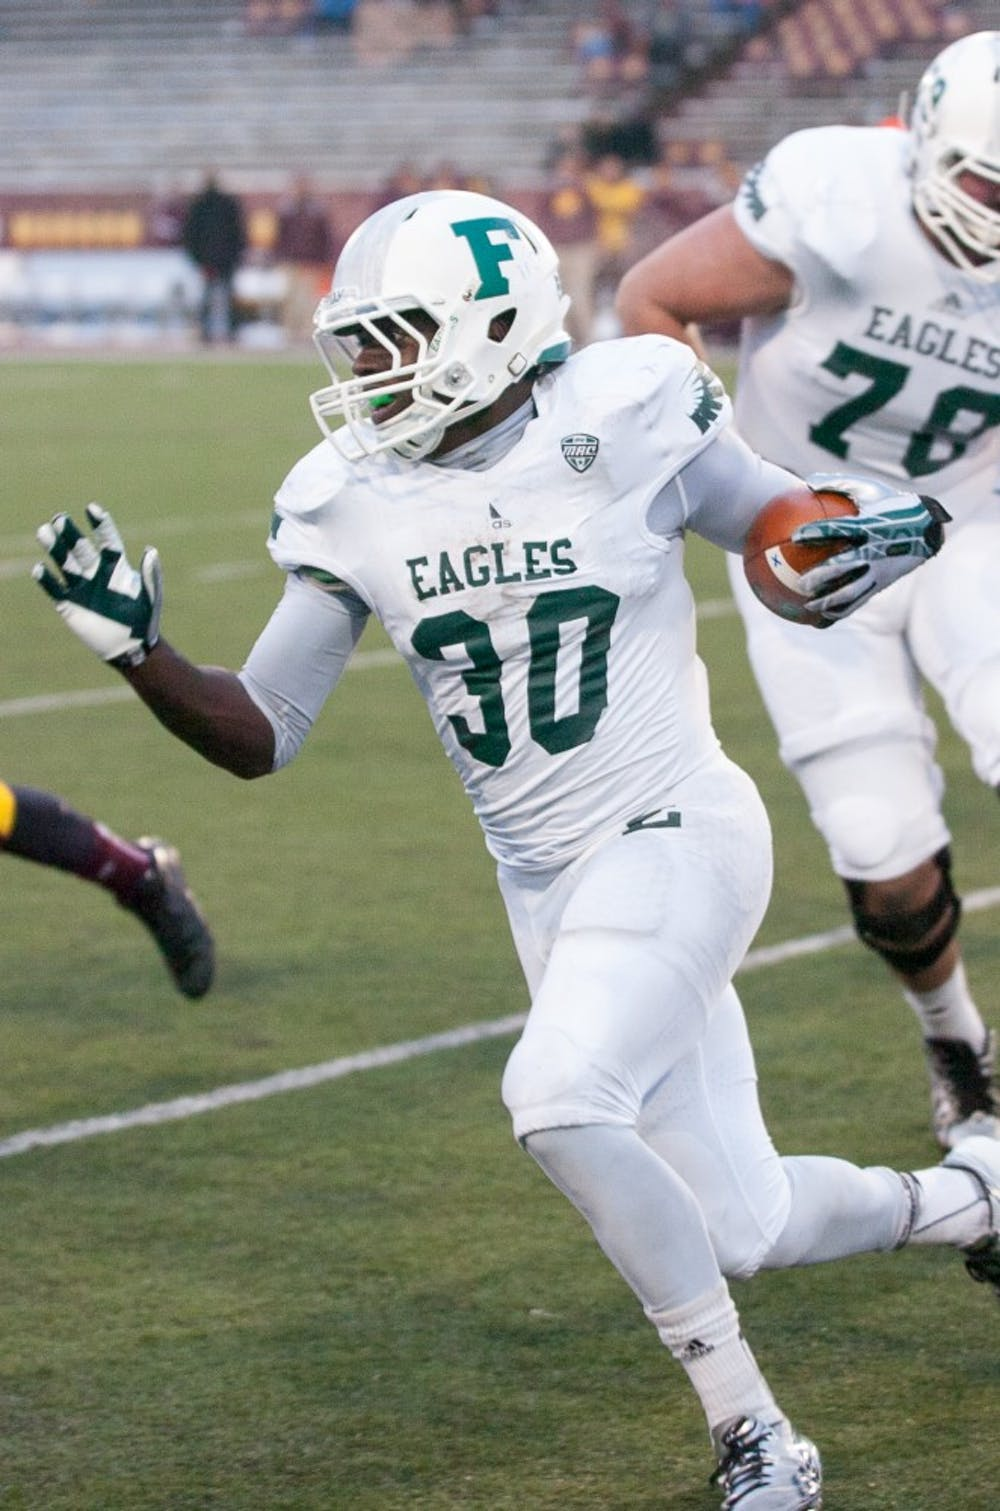 EMU blown out by Central Michigan, 42-10